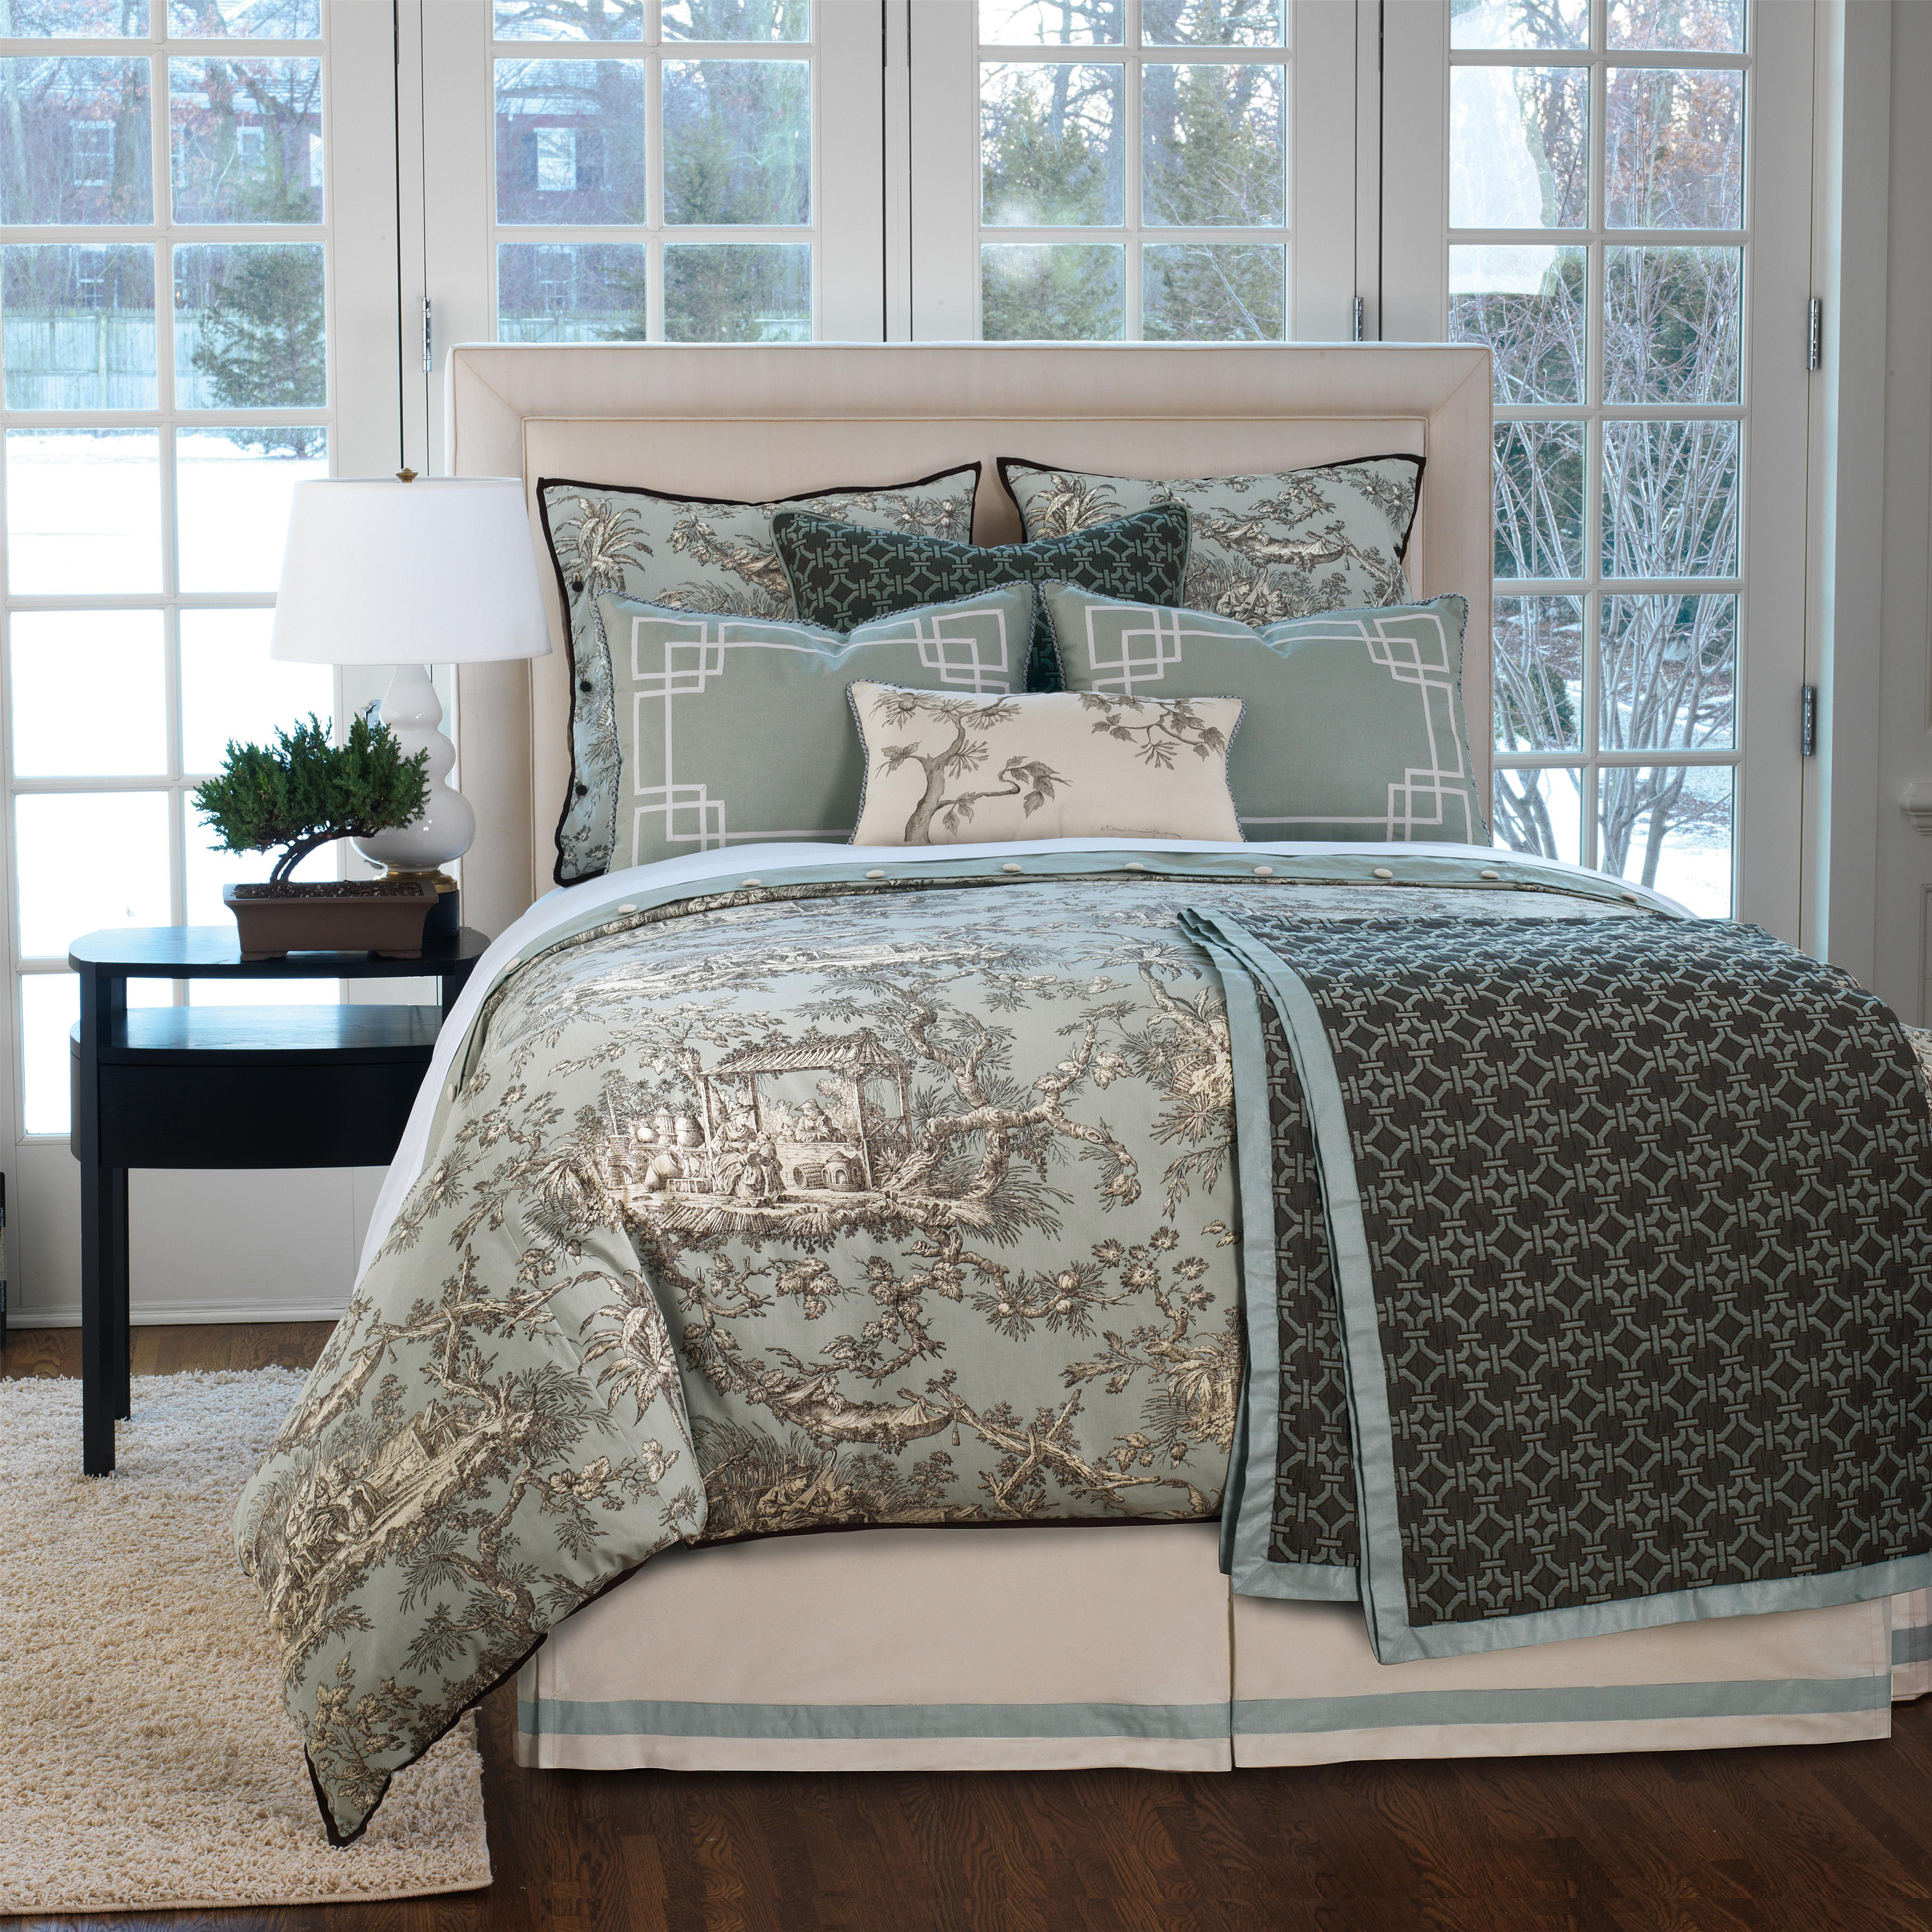 Vera Queen Bedset by Eastern Accents at Alison Craig Home Furnishings